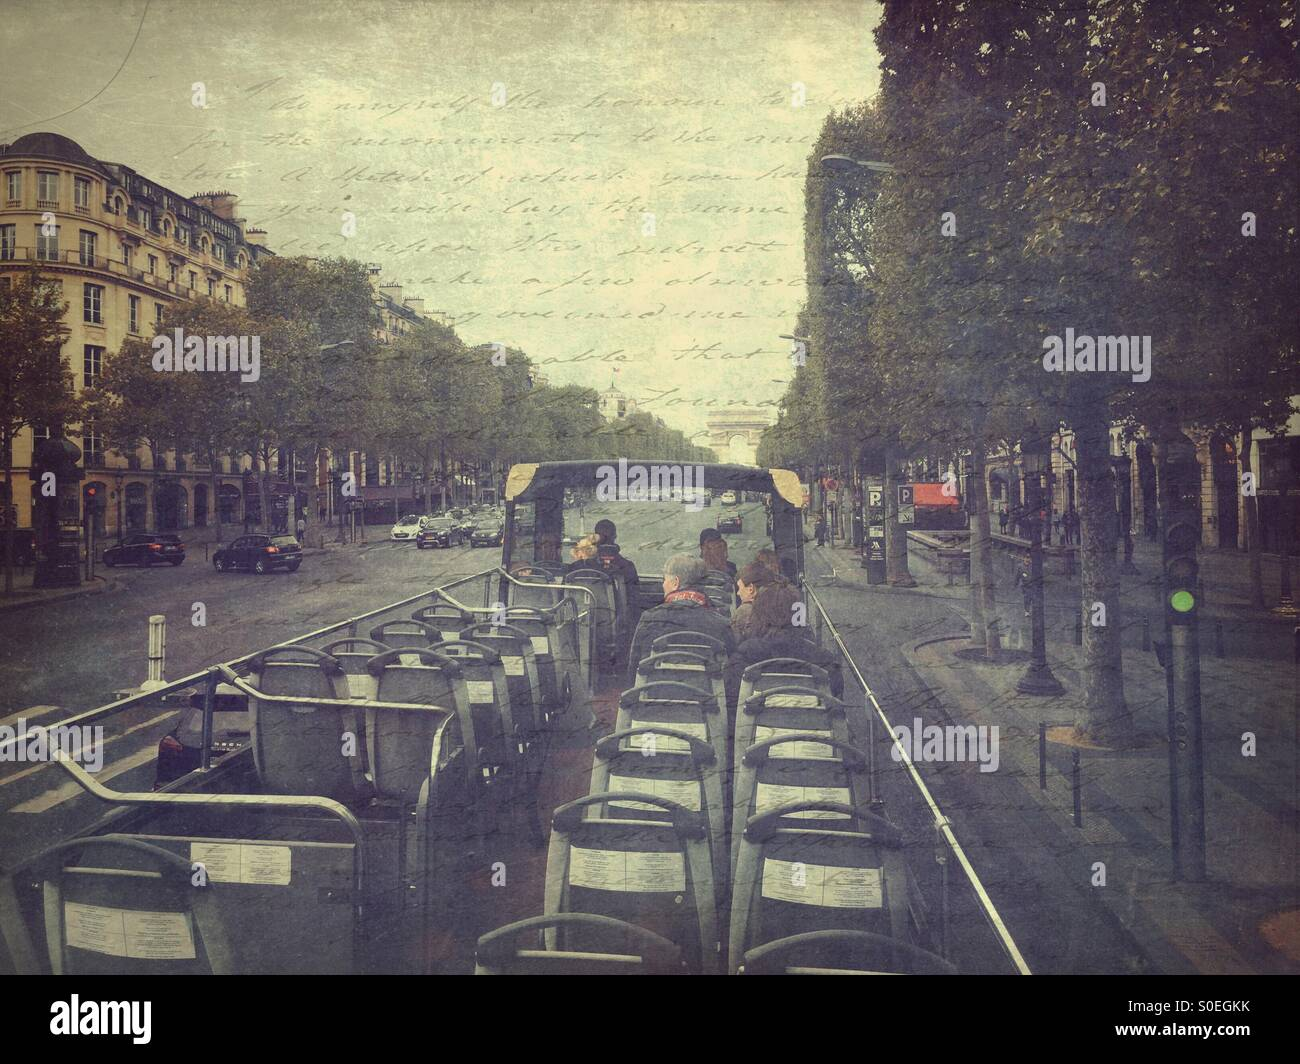 View of Champs Elysees from roof of open air sightseeing bus in Paris, France. Vintage paper texture with lettering - Stock Image